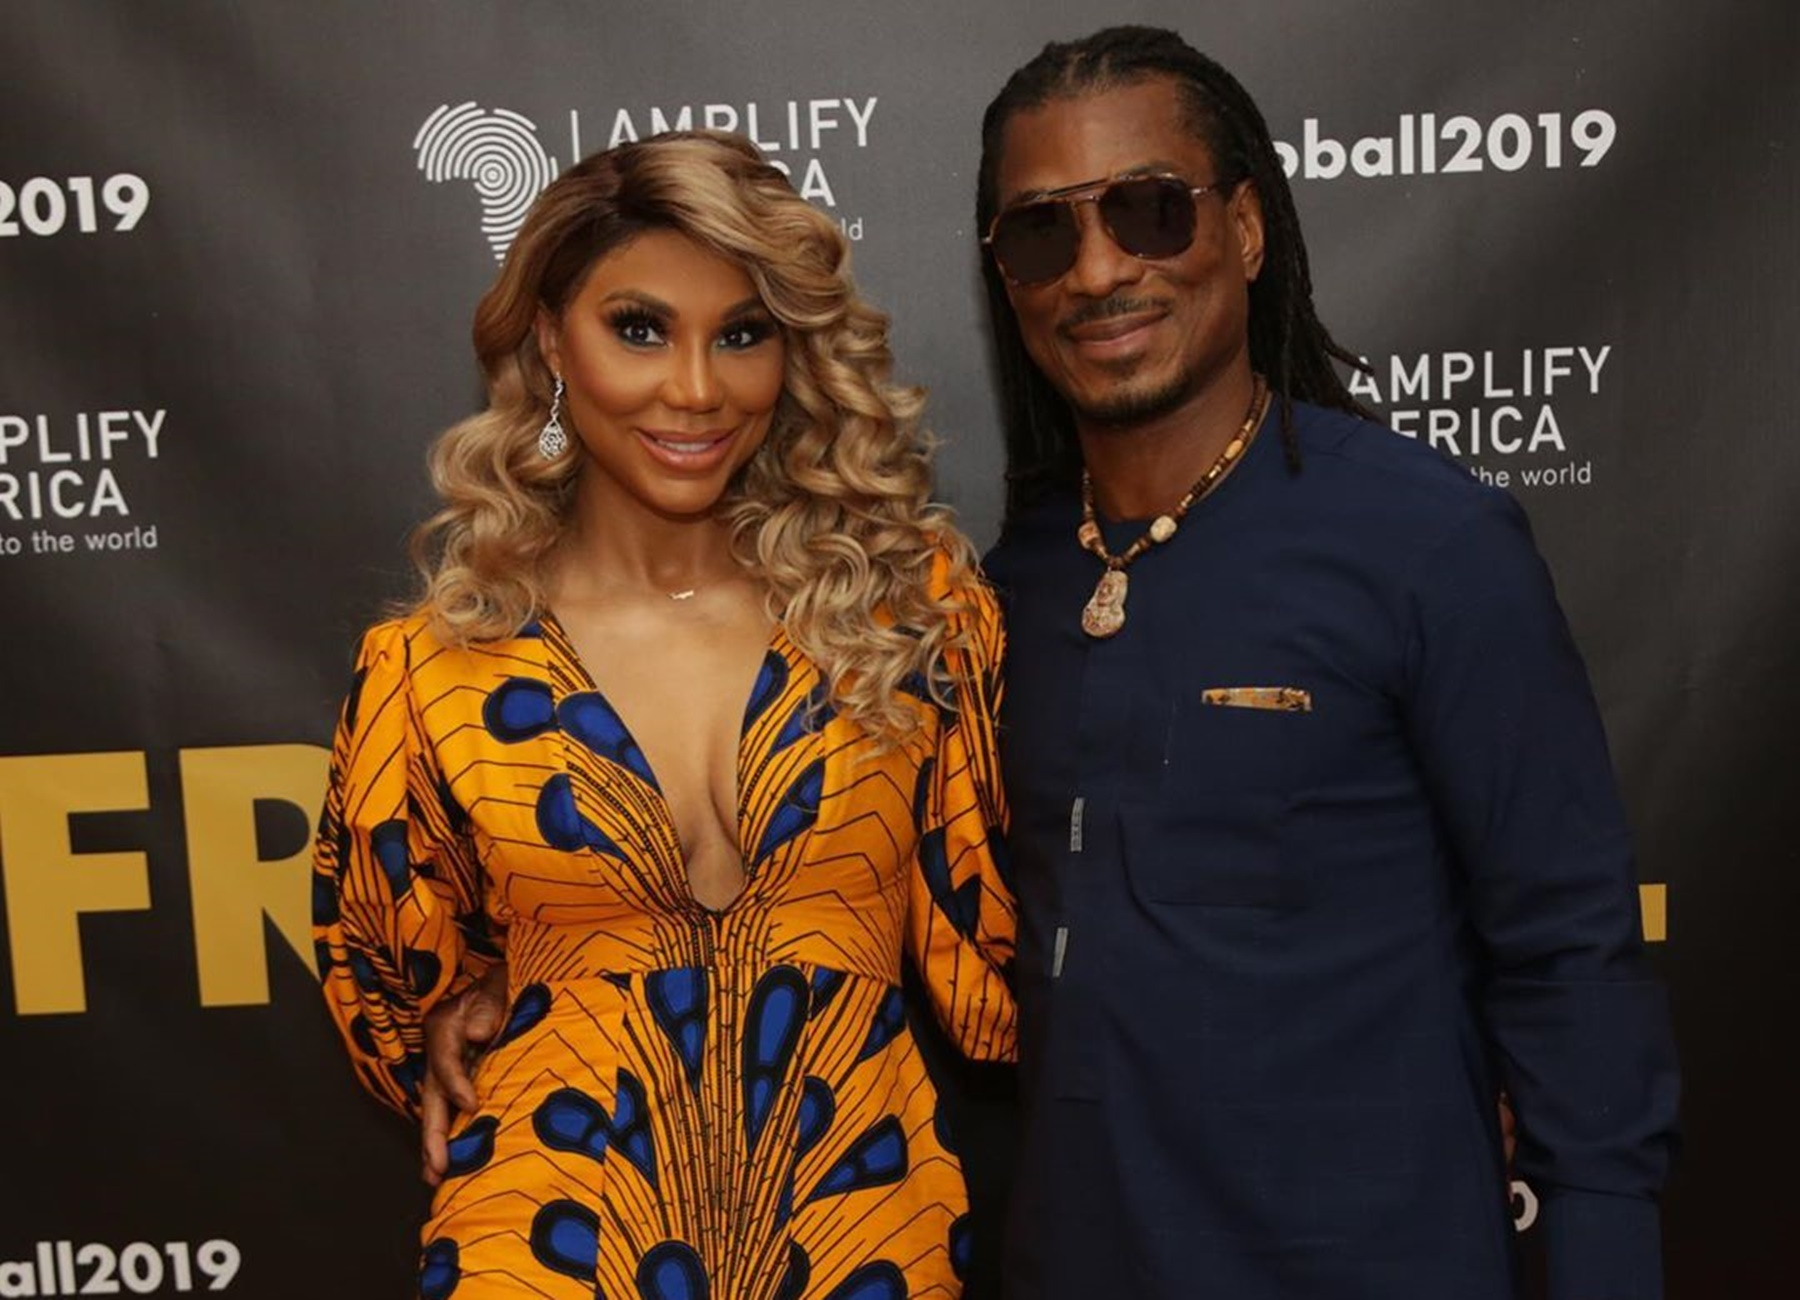 tamar-braxton-looks-like-a-princess-in-ankra-gown-at-the-afro-ball-with-david-adefeso-the-pictures-come-with-hints-that-the-boyfriend-might-soon-pop-the-question